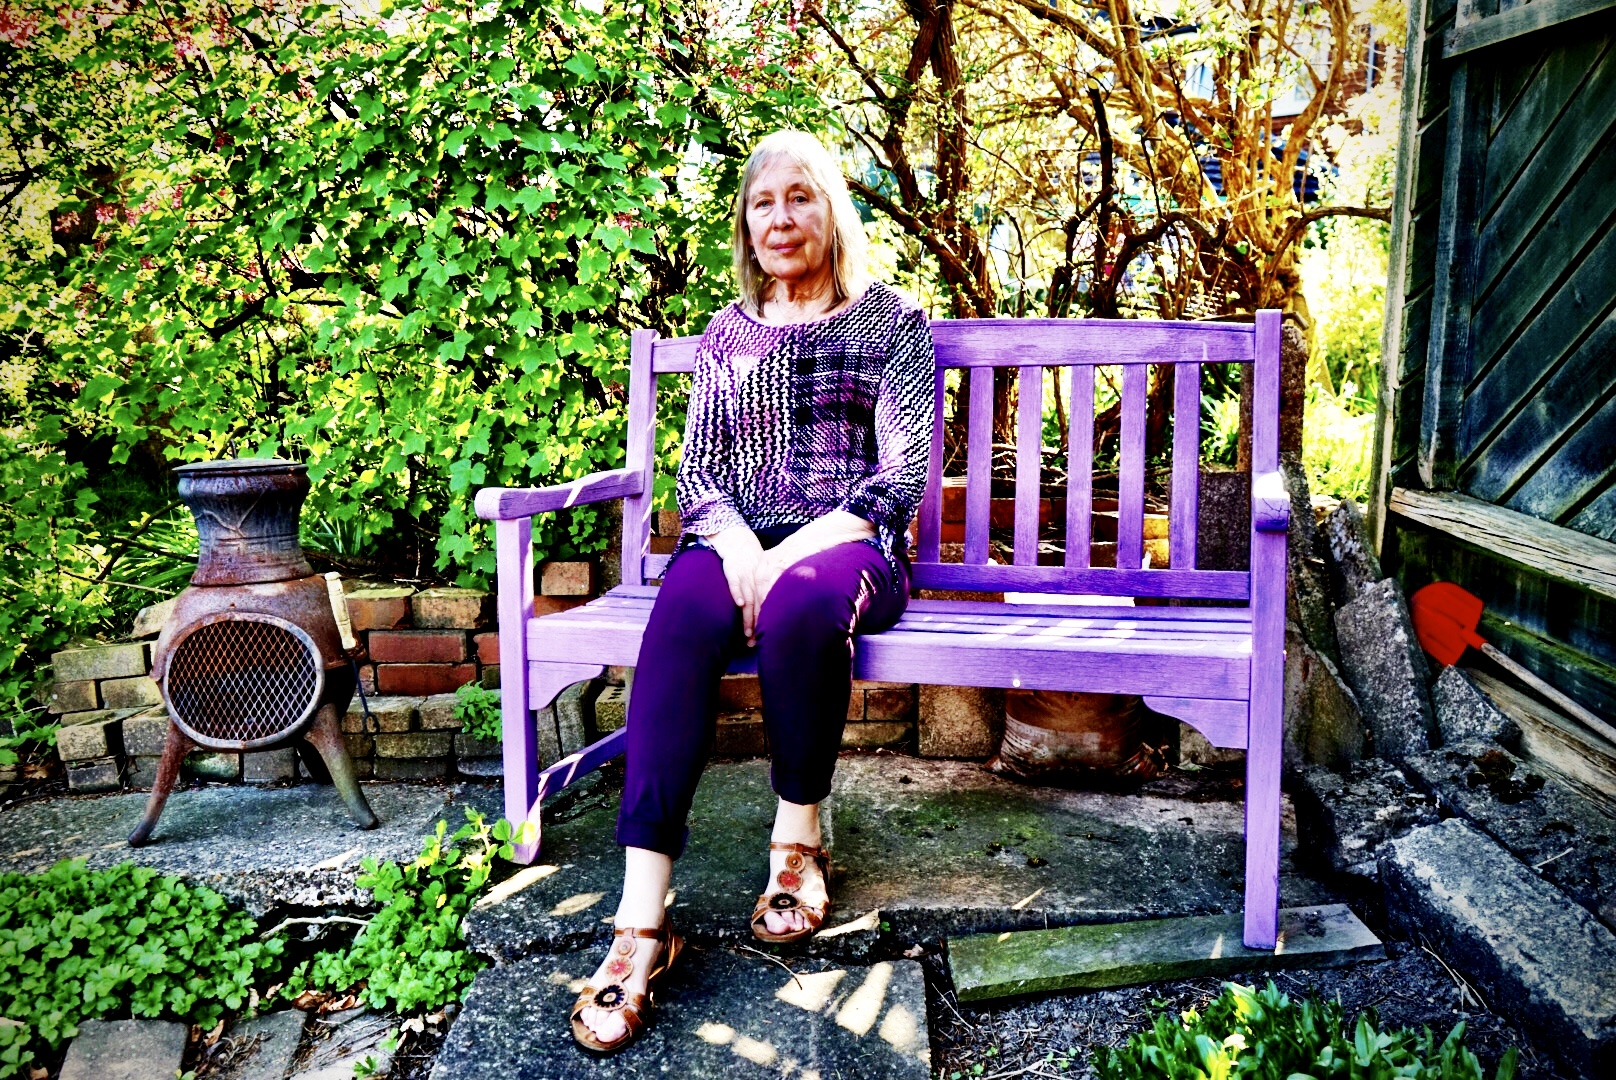 A moment to relax, in green and purple